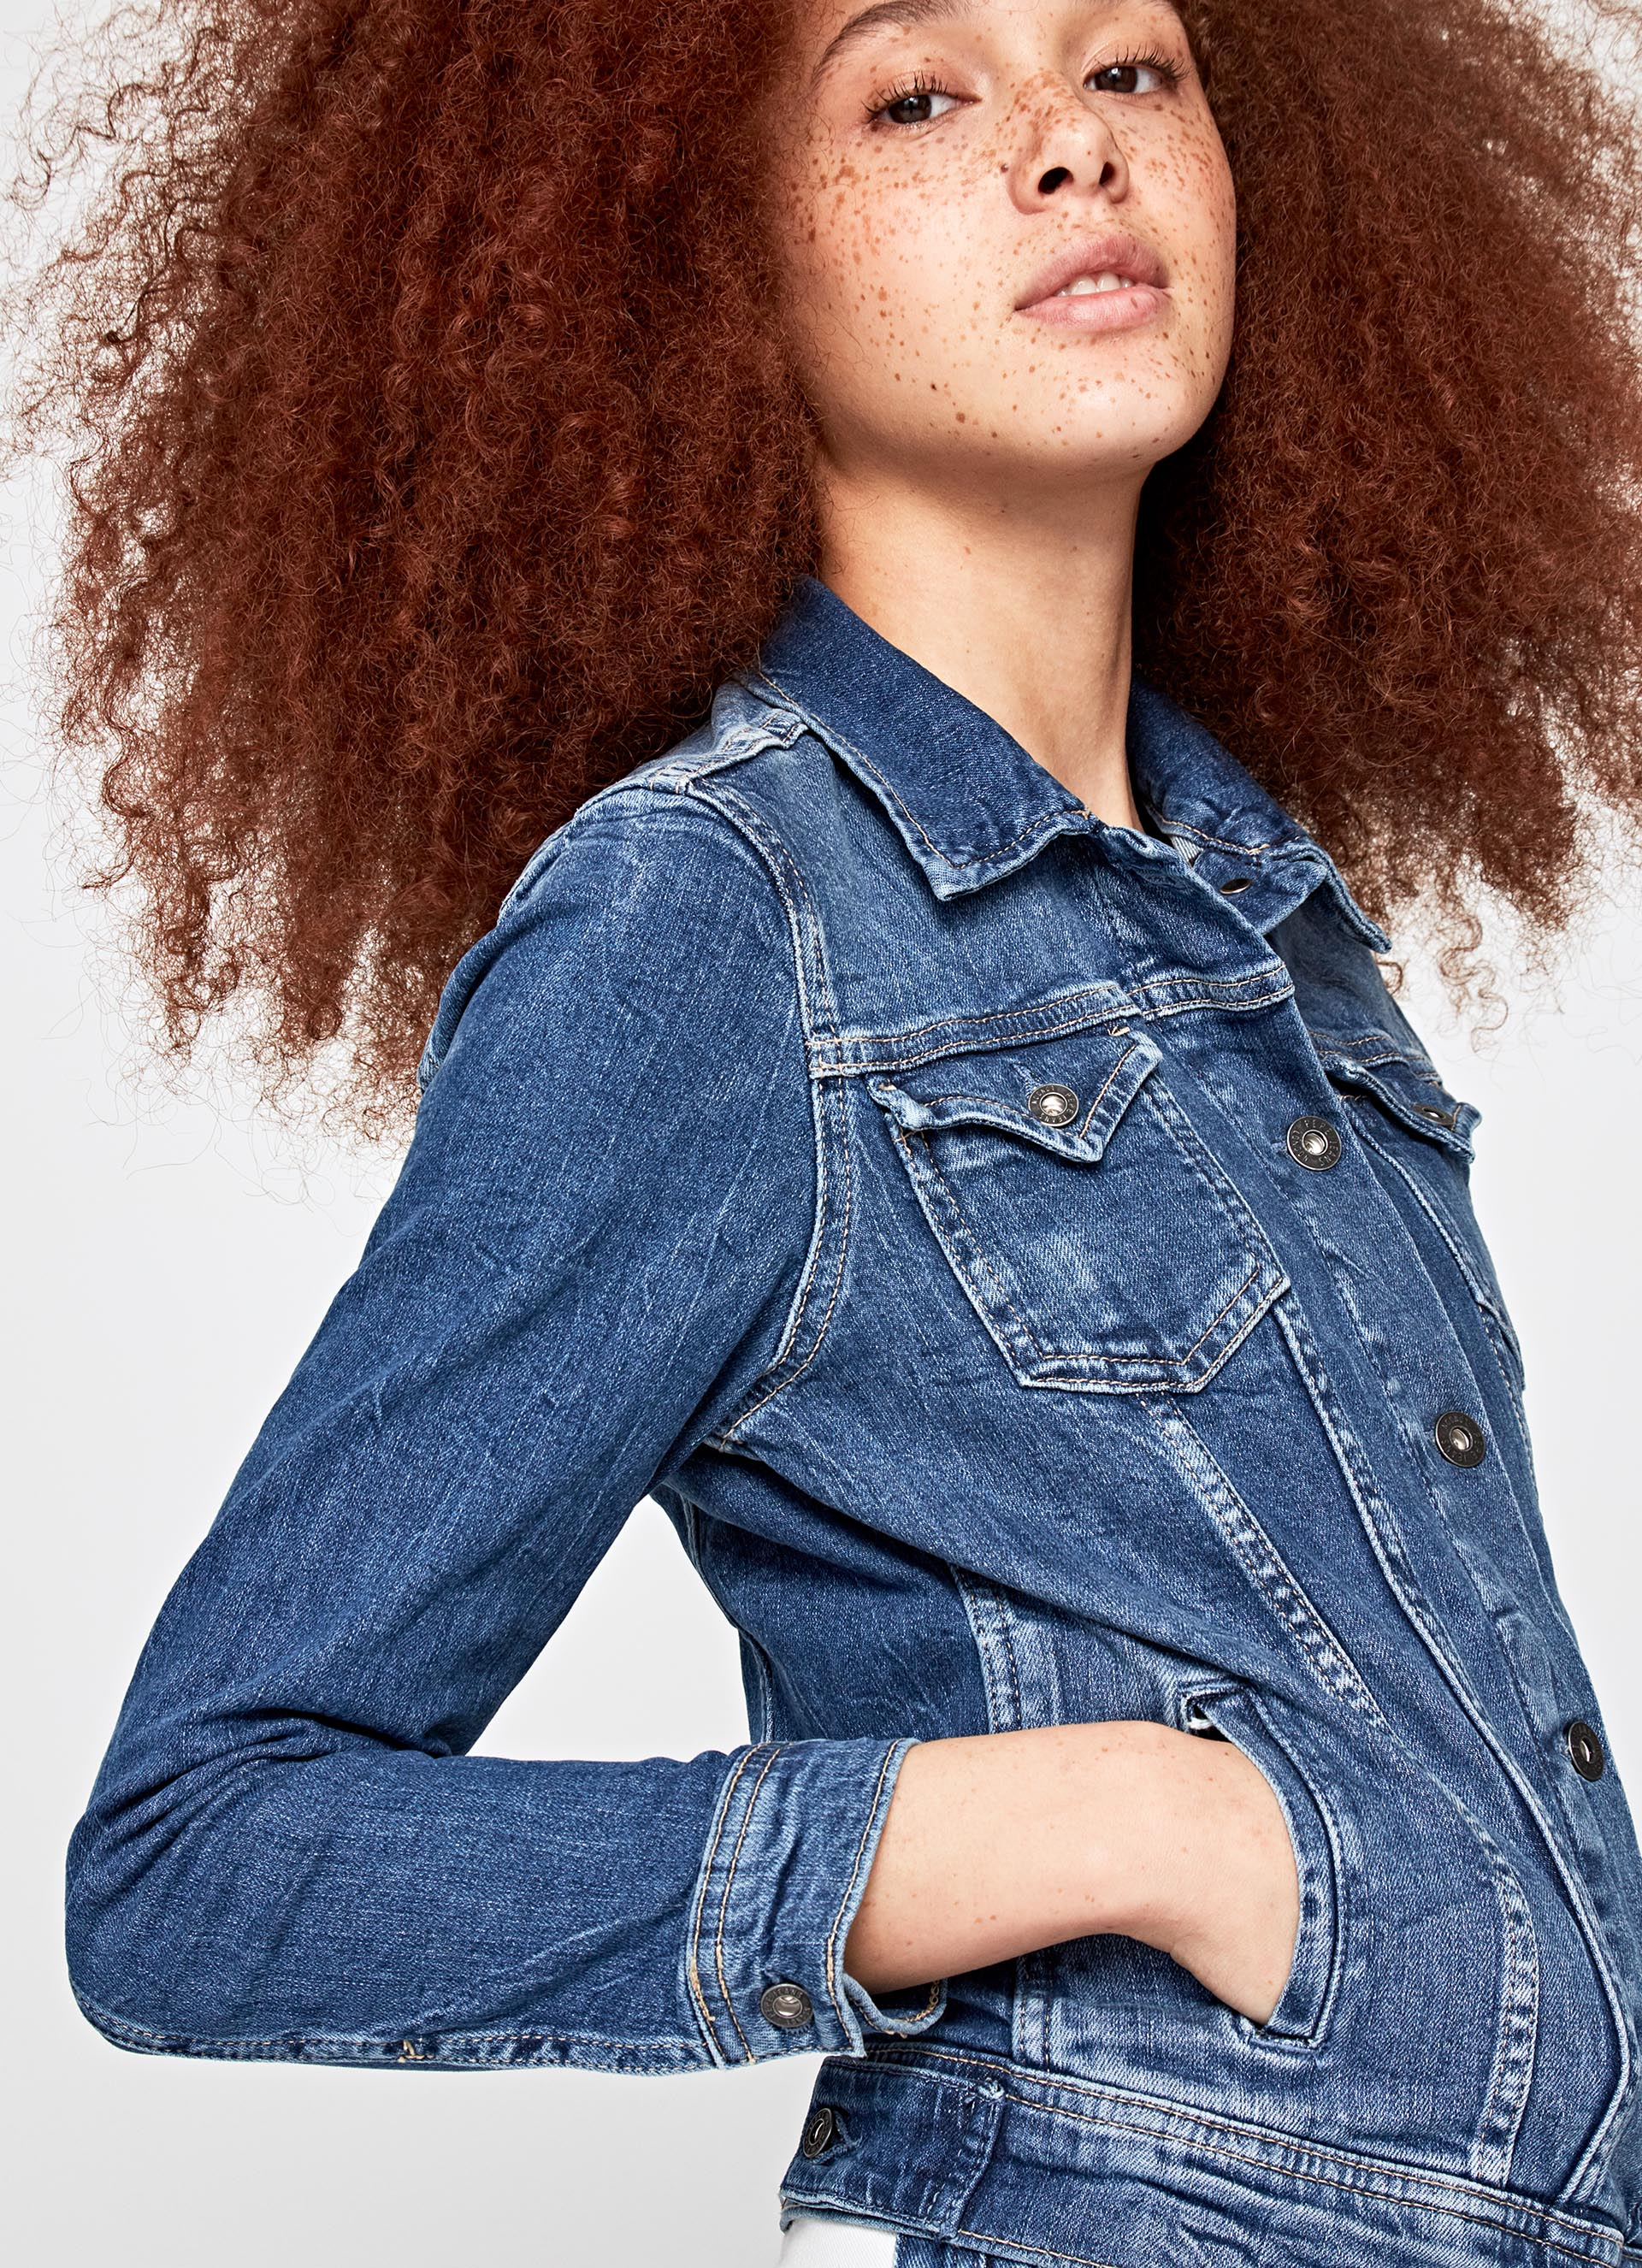 up to 50% off denim - Discover Pepe Jeans staple wardrobe pieces in this denim sale and save up to 50% off. Shop a full collection of varied styles and cuts now at affordable prices.